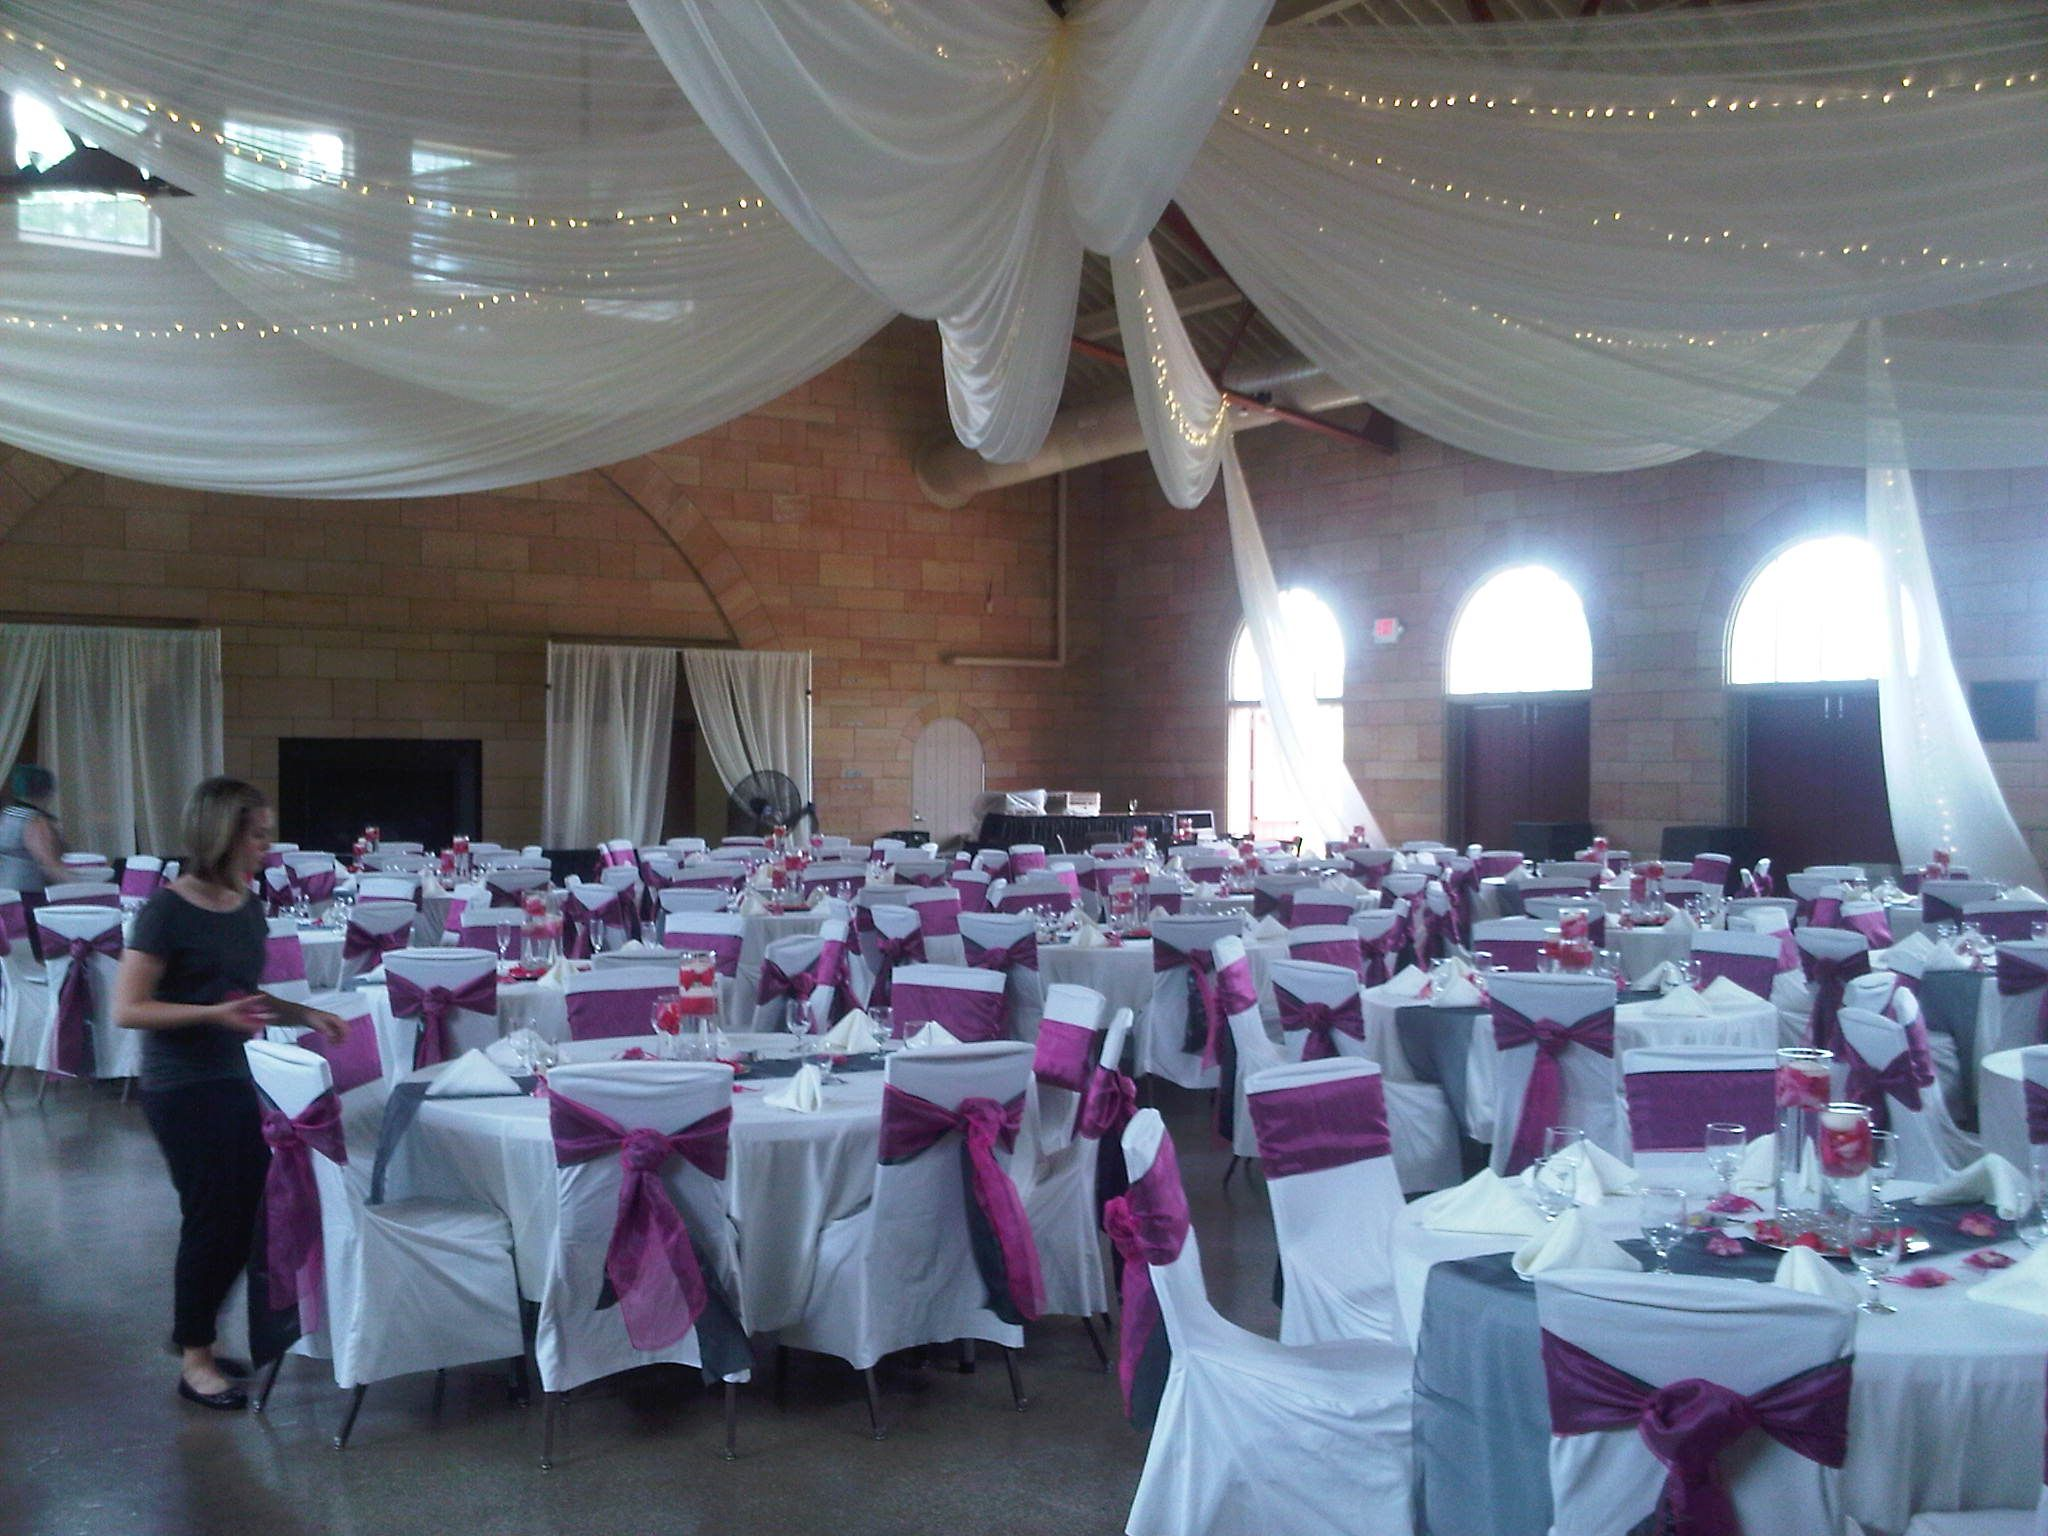 Ivory Pipe U0026 Drape, Ivory Drape (star Design), Ivory Table Linens With  Charcoal Organza Runners, Ivory Chair Covers With Charcoal Satin Sash U0026 Hot  Pink ...